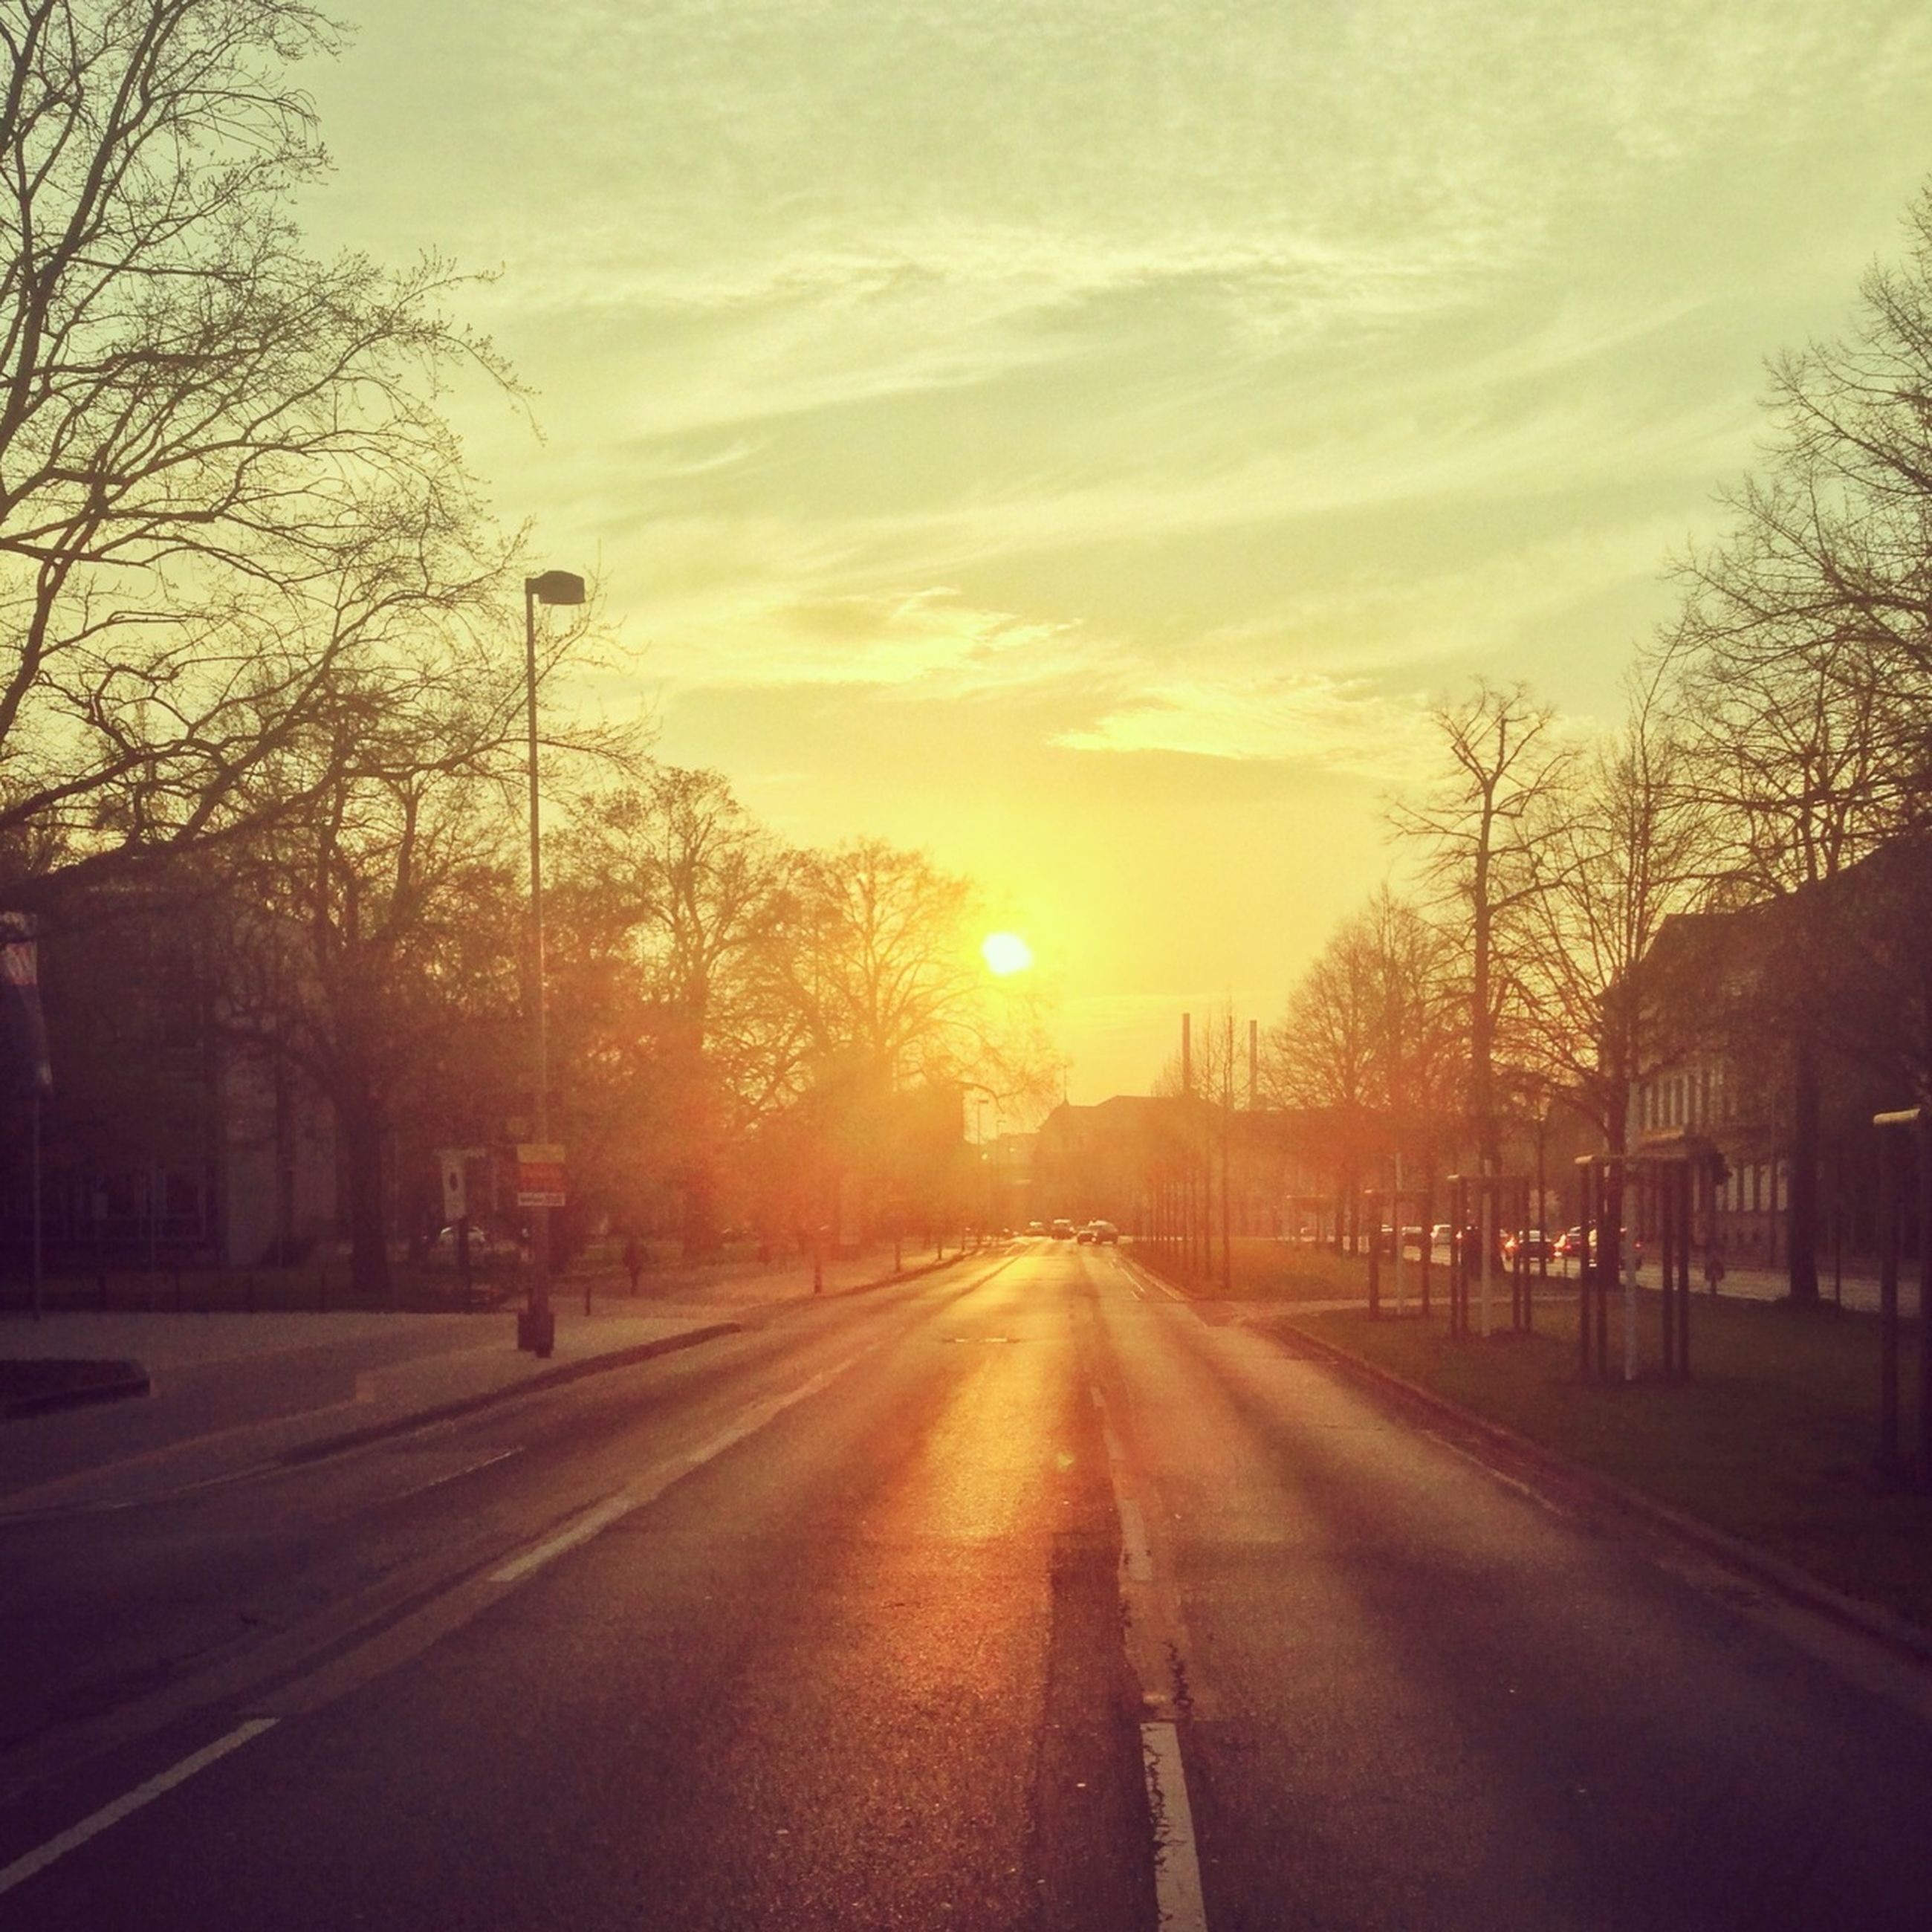 sunset, the way forward, transportation, tree, road, diminishing perspective, sky, vanishing point, sun, street, road marking, silhouette, building exterior, city, sunlight, bare tree, car, cloud - sky, orange color, built structure